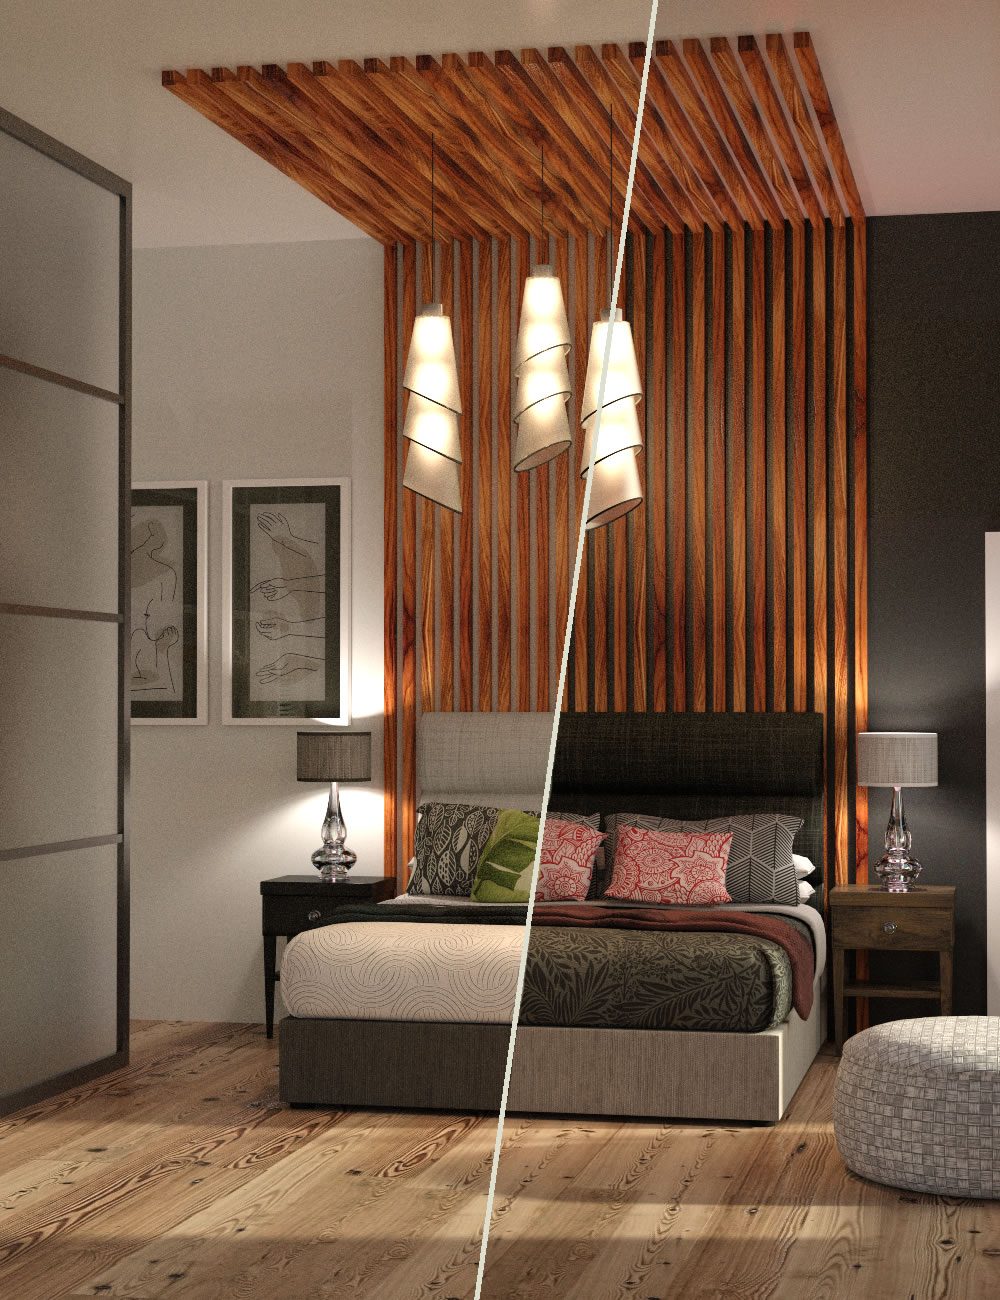 Dream-On Bedroom with Genesis 8 Female Poses by: SilvaAnt3d, 3D Models by Daz 3D